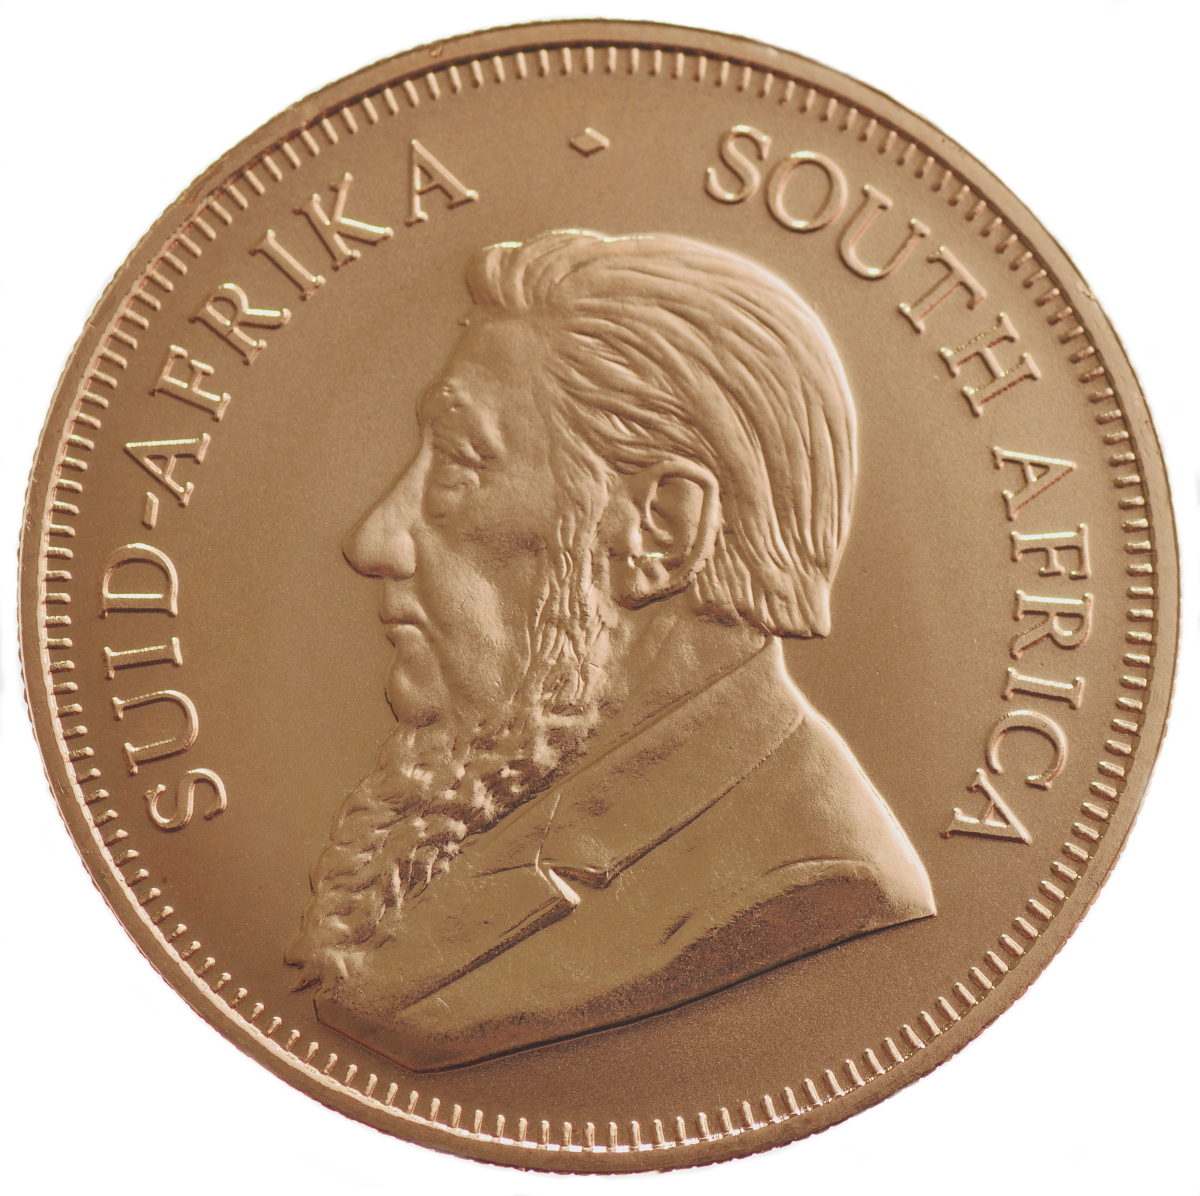 Krugerrand Buy Krugerrands Bullionbypost 174 From 163 1 008